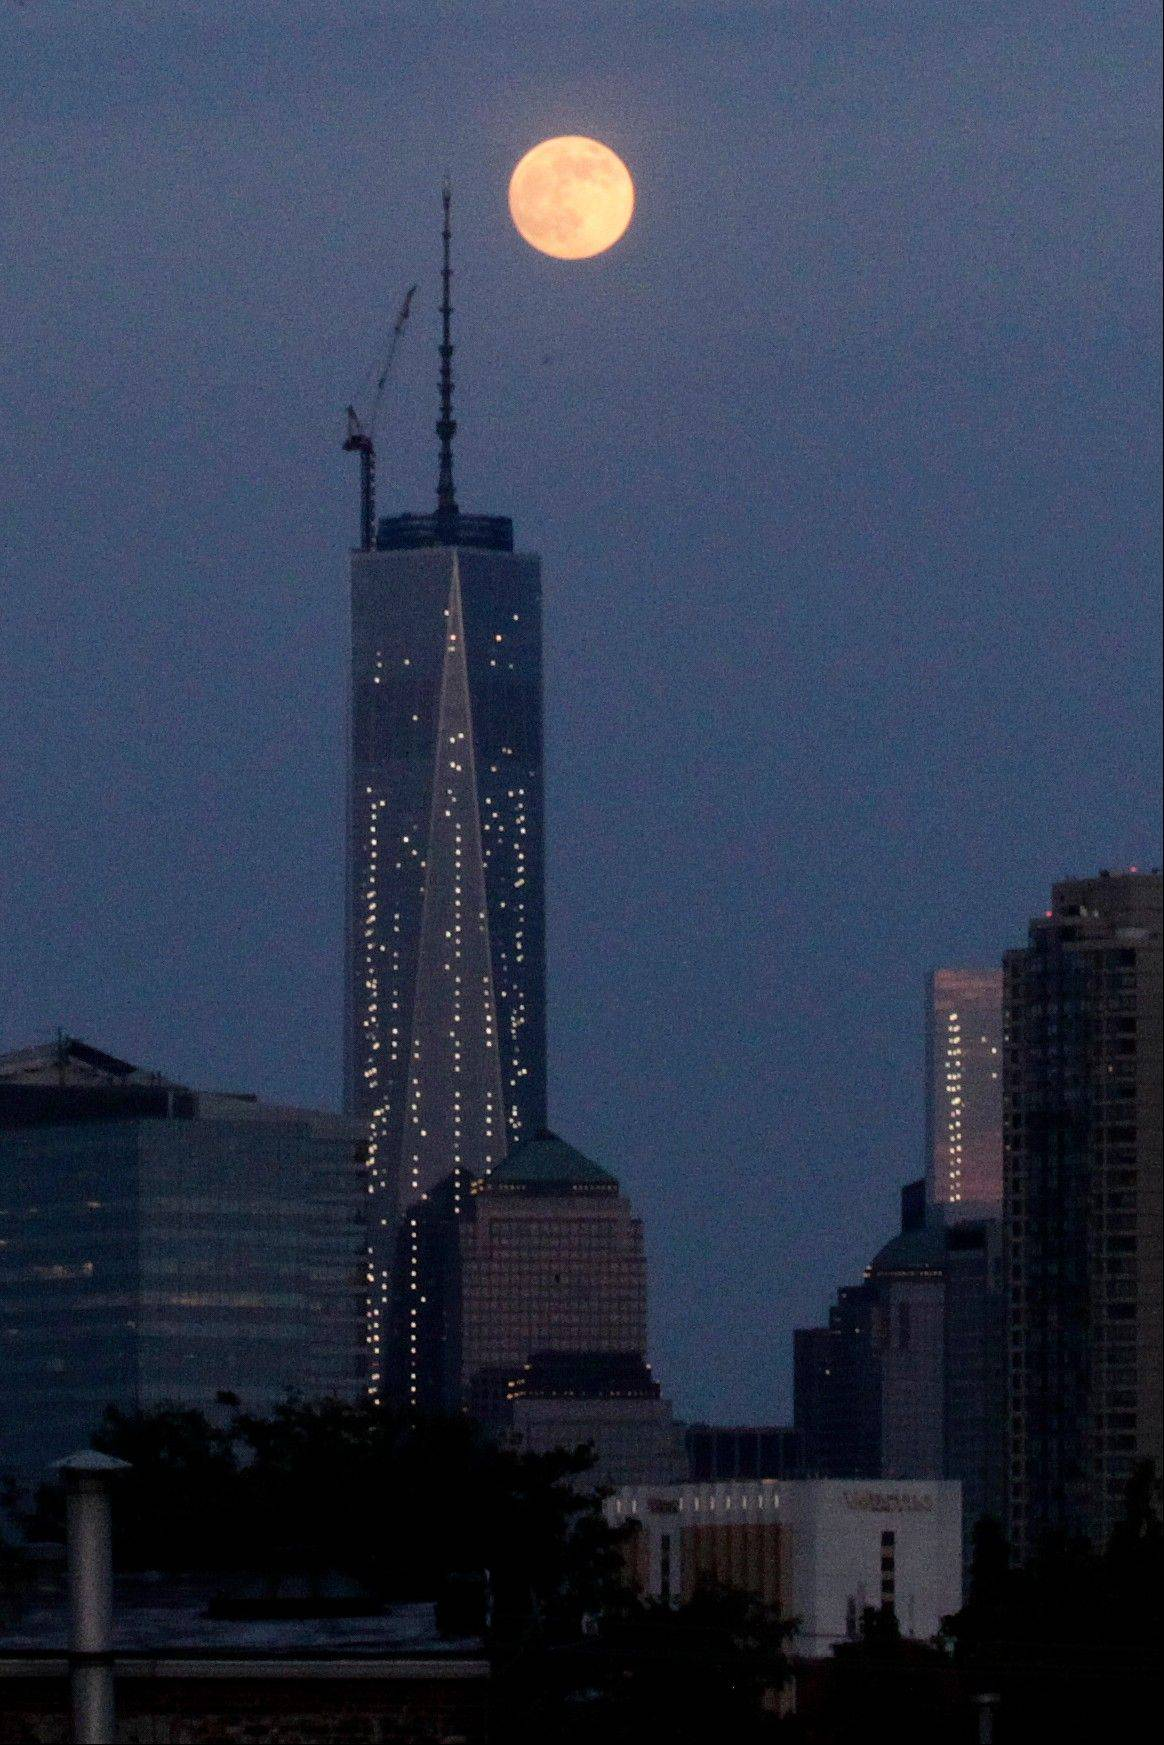 The moon is seen in its waxing gibbous stage as it rises over Lower Manhattan, including One World Trade Center, center, seen from The Heights neighborhood of Jersey City, N.J., Saturday, June 22, 2013. The moon, which will reach its full stage on Sunday, is expected to be seen 13.5 percent larger than usual during a phenomenon known as supermoon.